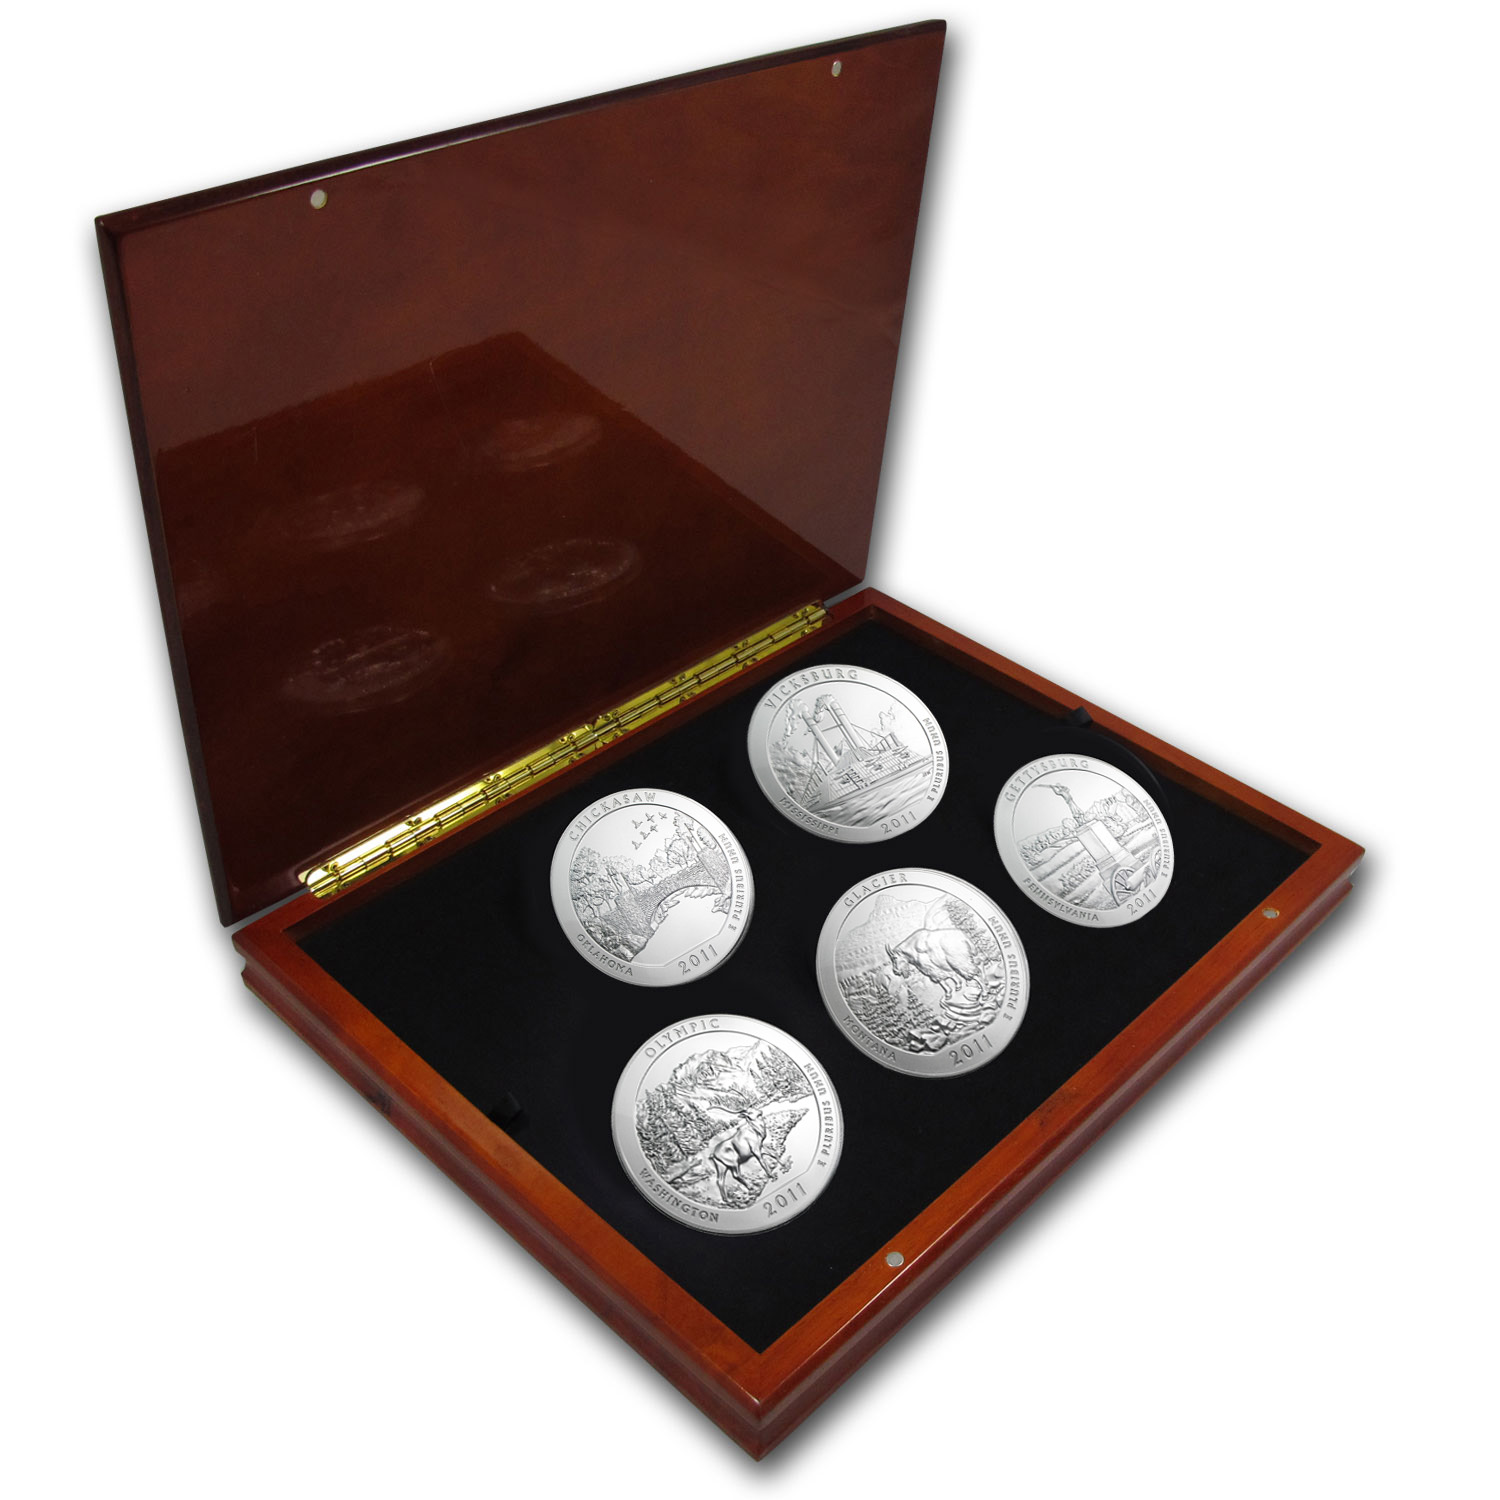 2011 5-Coin 5 oz Silver ATB Set (Elegant Display Box)